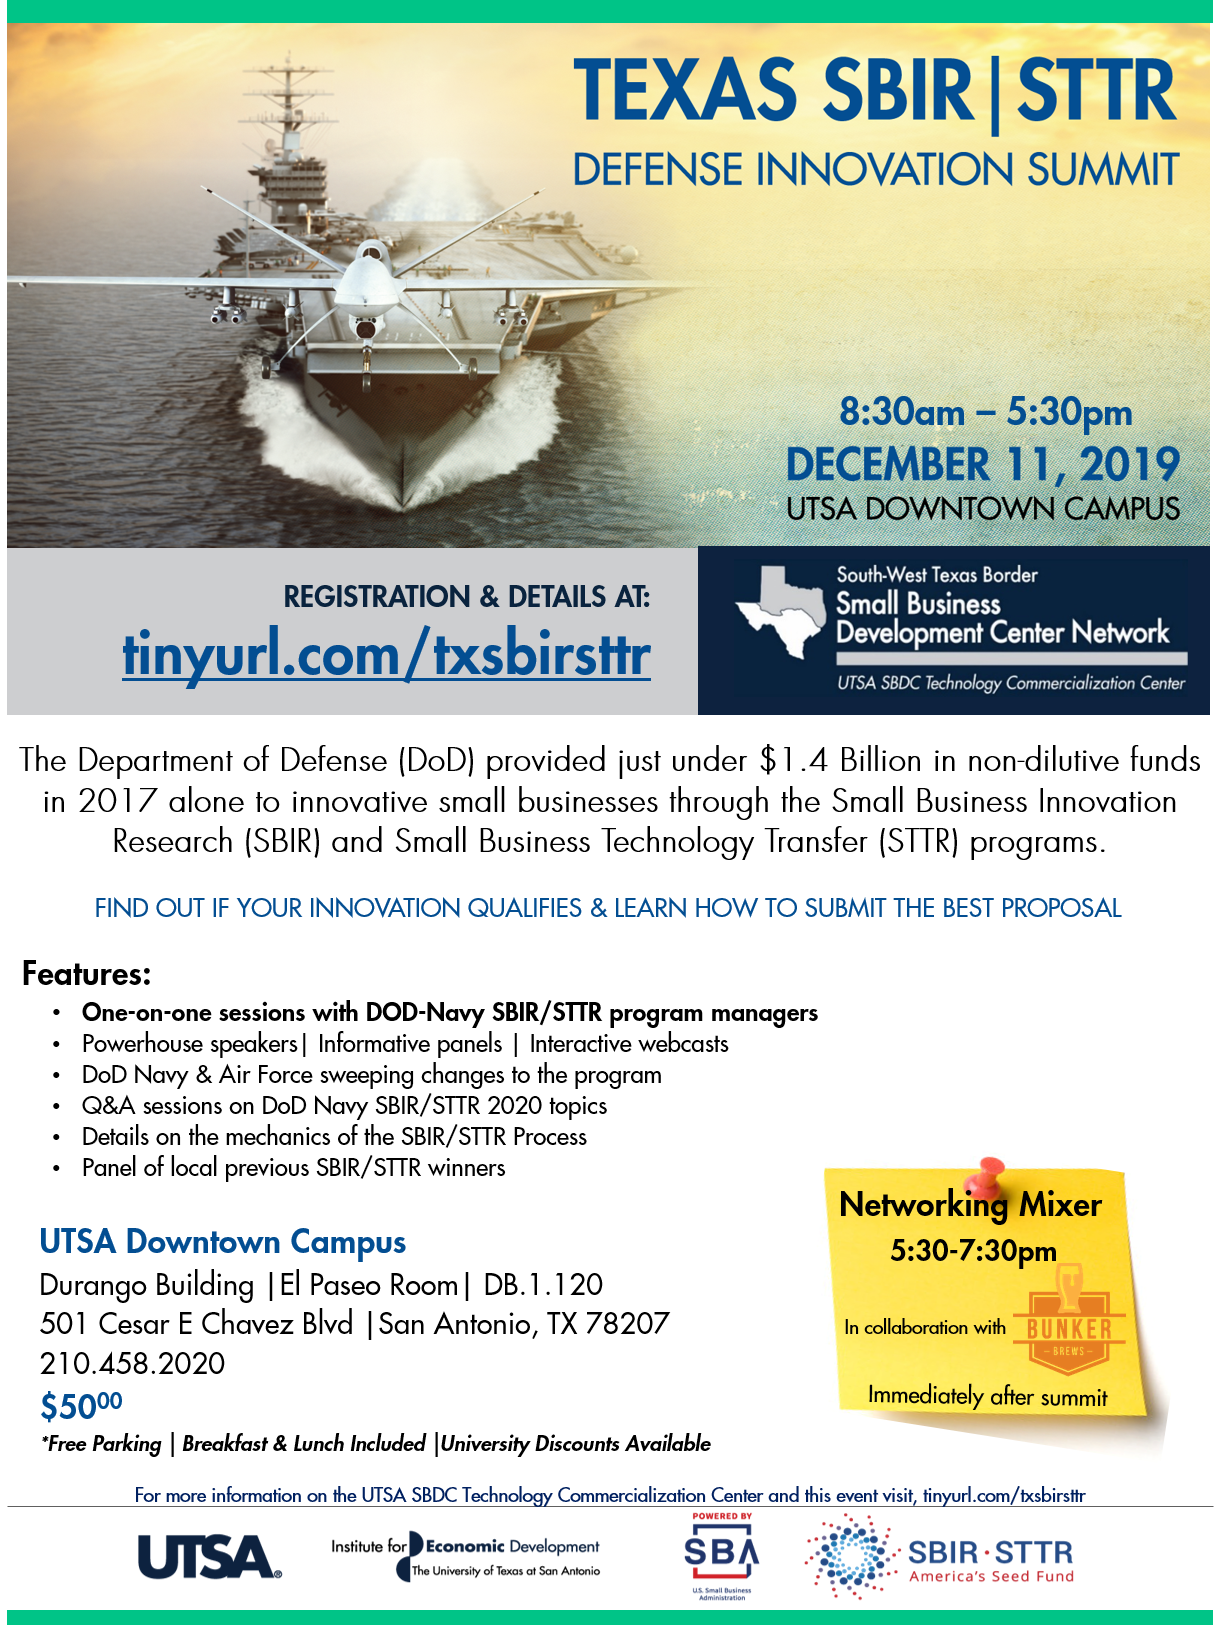 Tx SBIR Defense Innovation Summit - Flyer Final v2.0 - Corrected